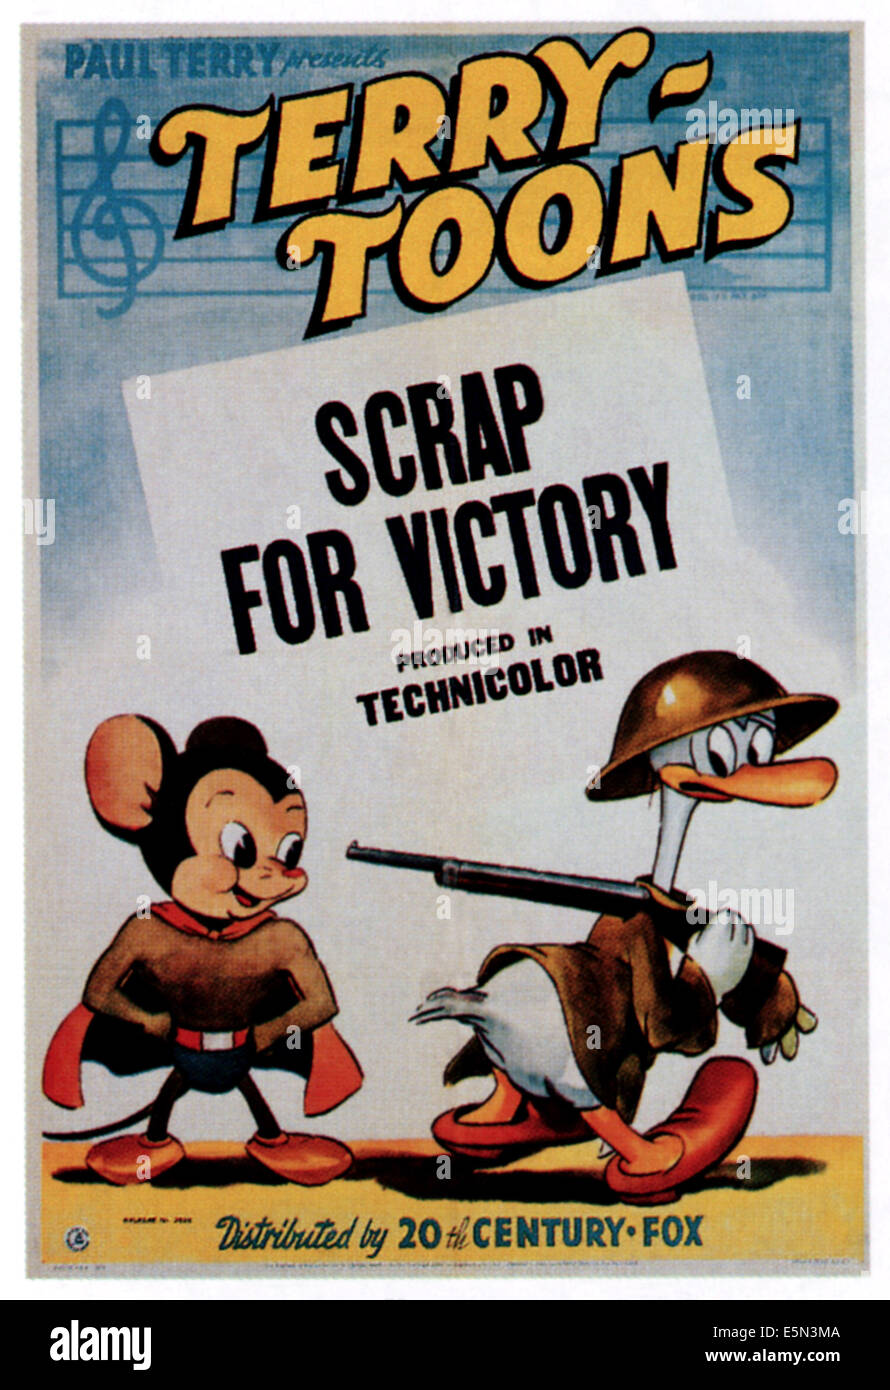 SCRAP FOR VICTORY, left: Mighty Mouse, 1943, TM and Copyright ©20th Century Fox Film Corp. All rights reserved./courtesy - Stock Image